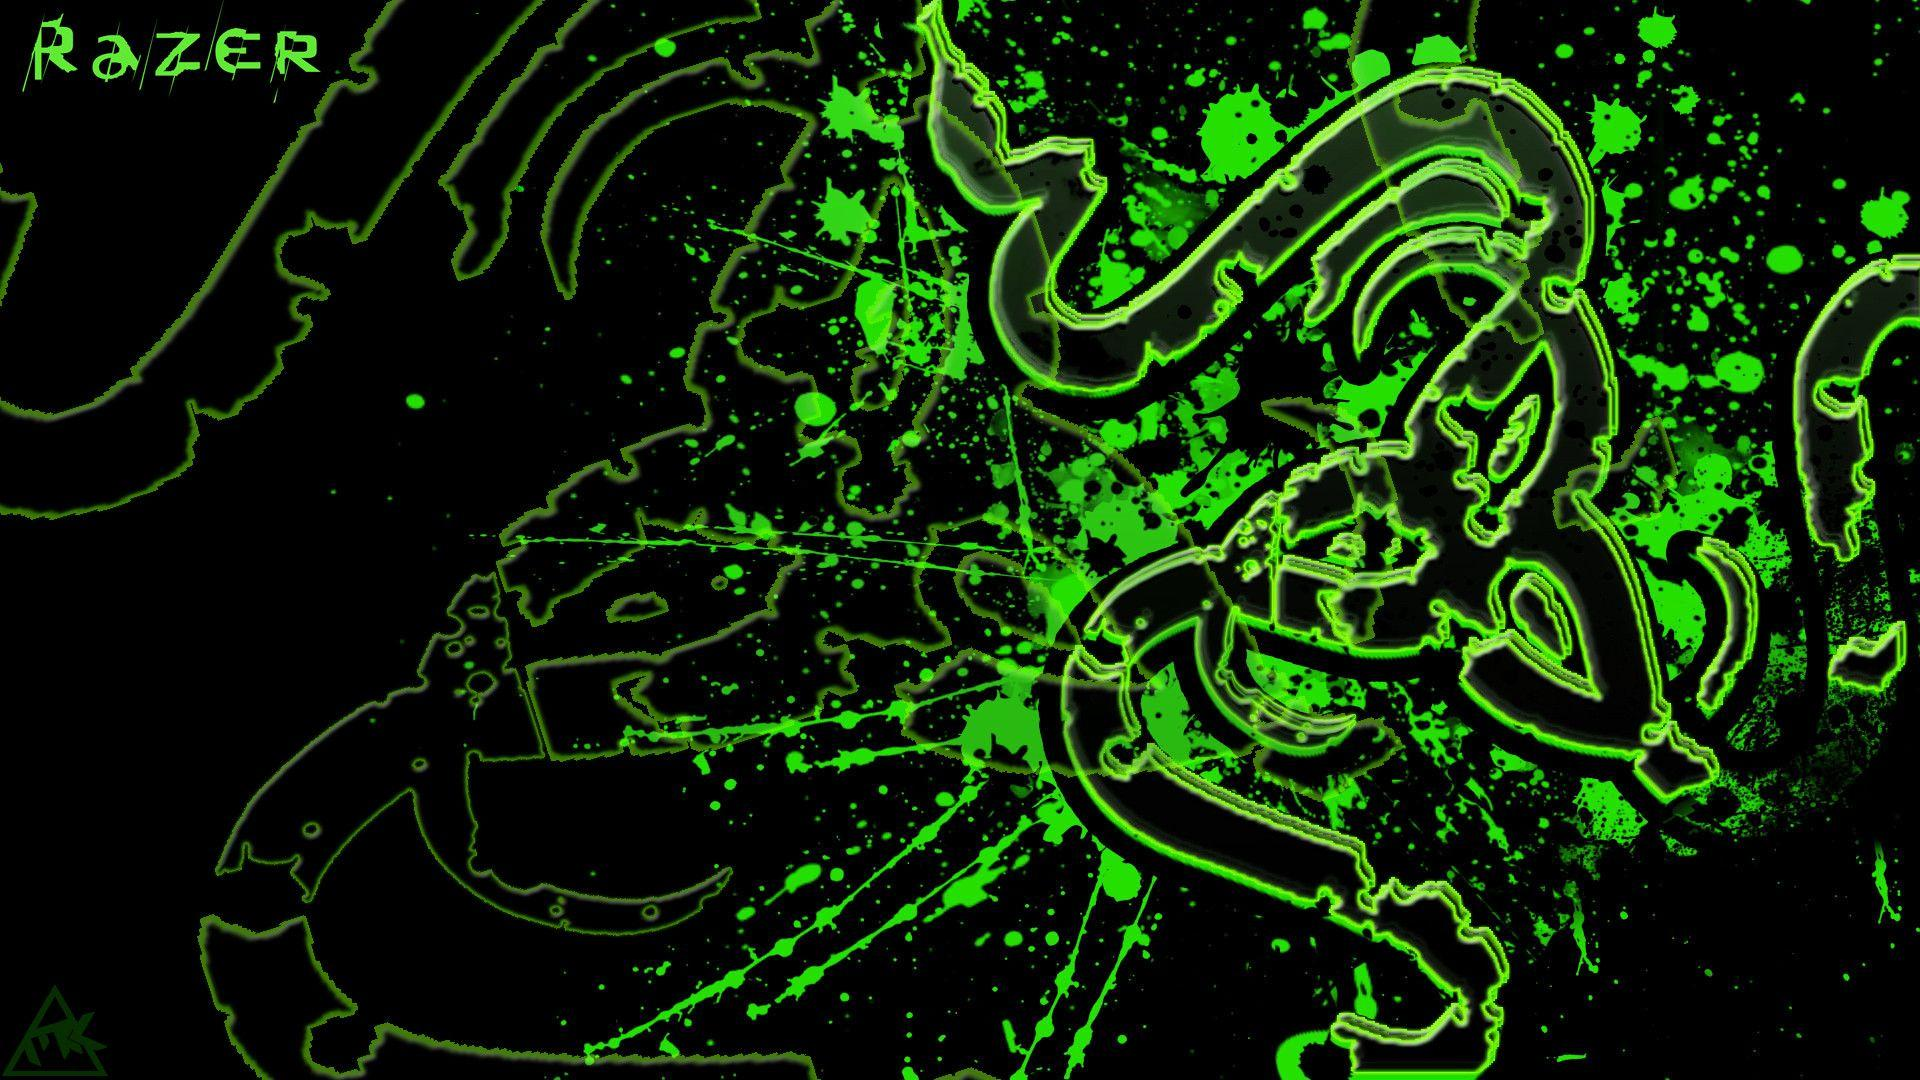 razer wallpaper 1920x1080 red - photo #29